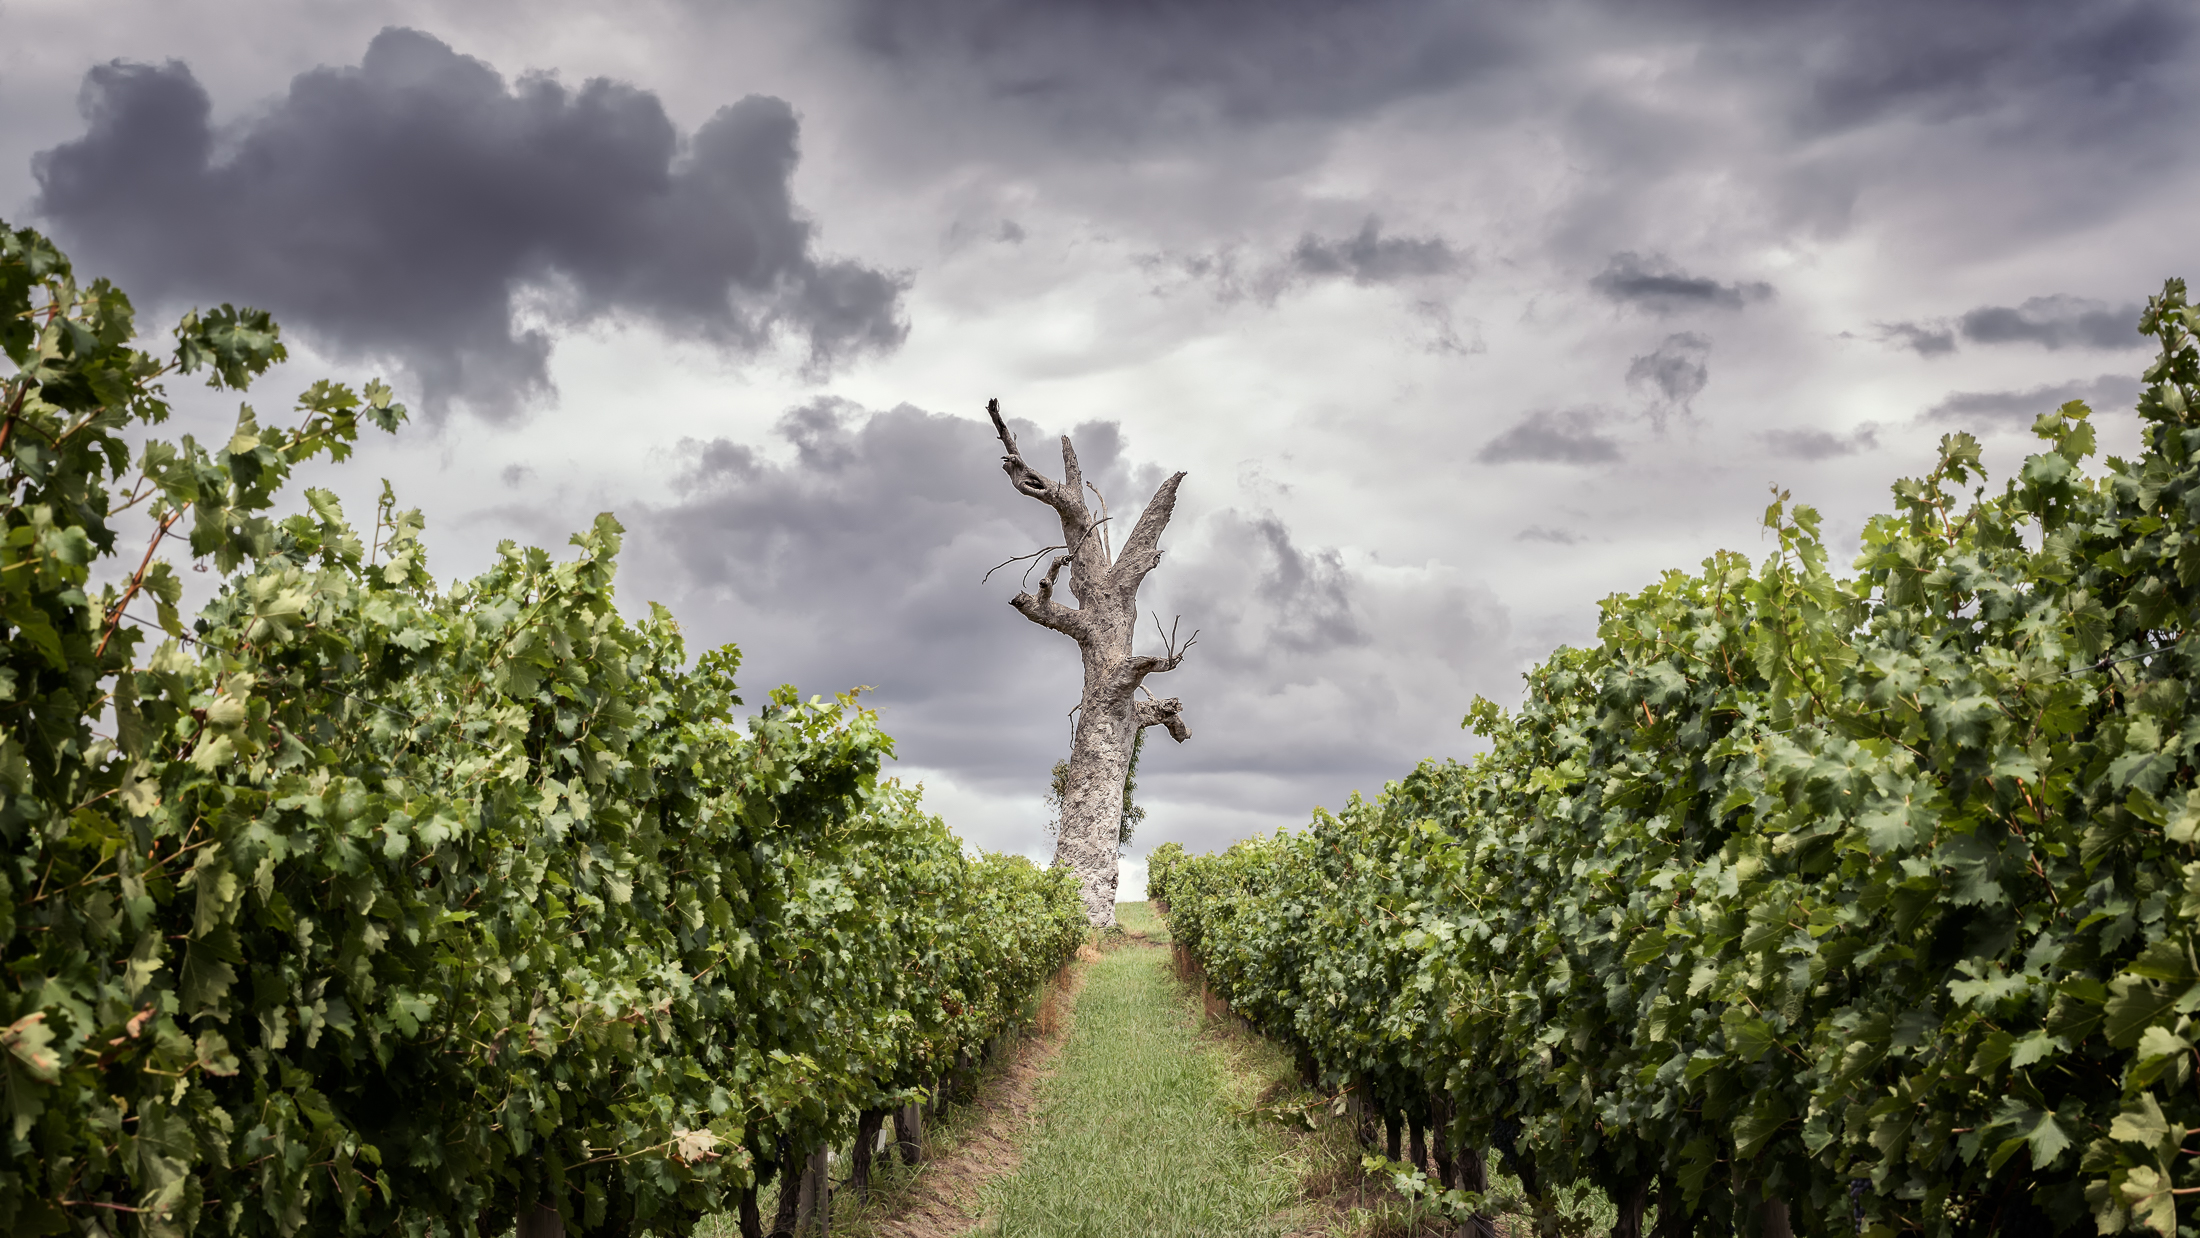 The Sentinel - Yarra Glen (Victoria, Australia) - Photo by Paul Tadday